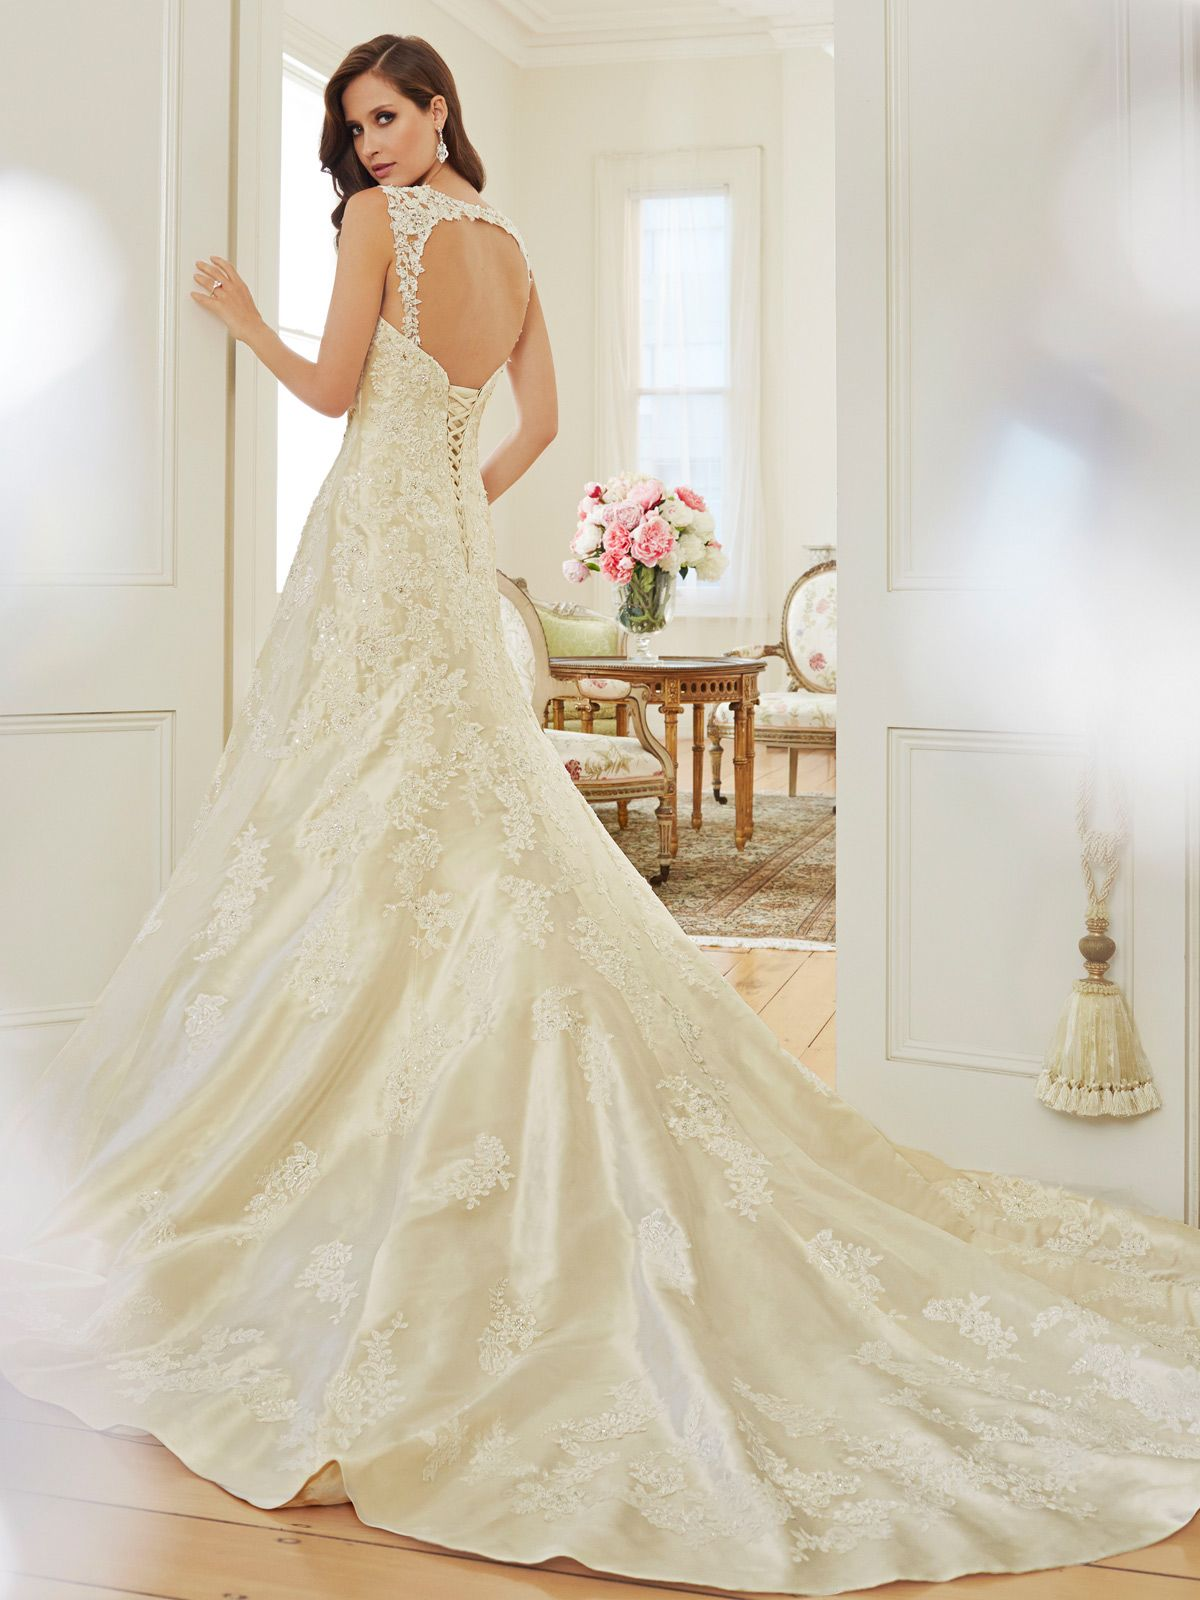 Sophia tolli style no ua y set the stage for romance with